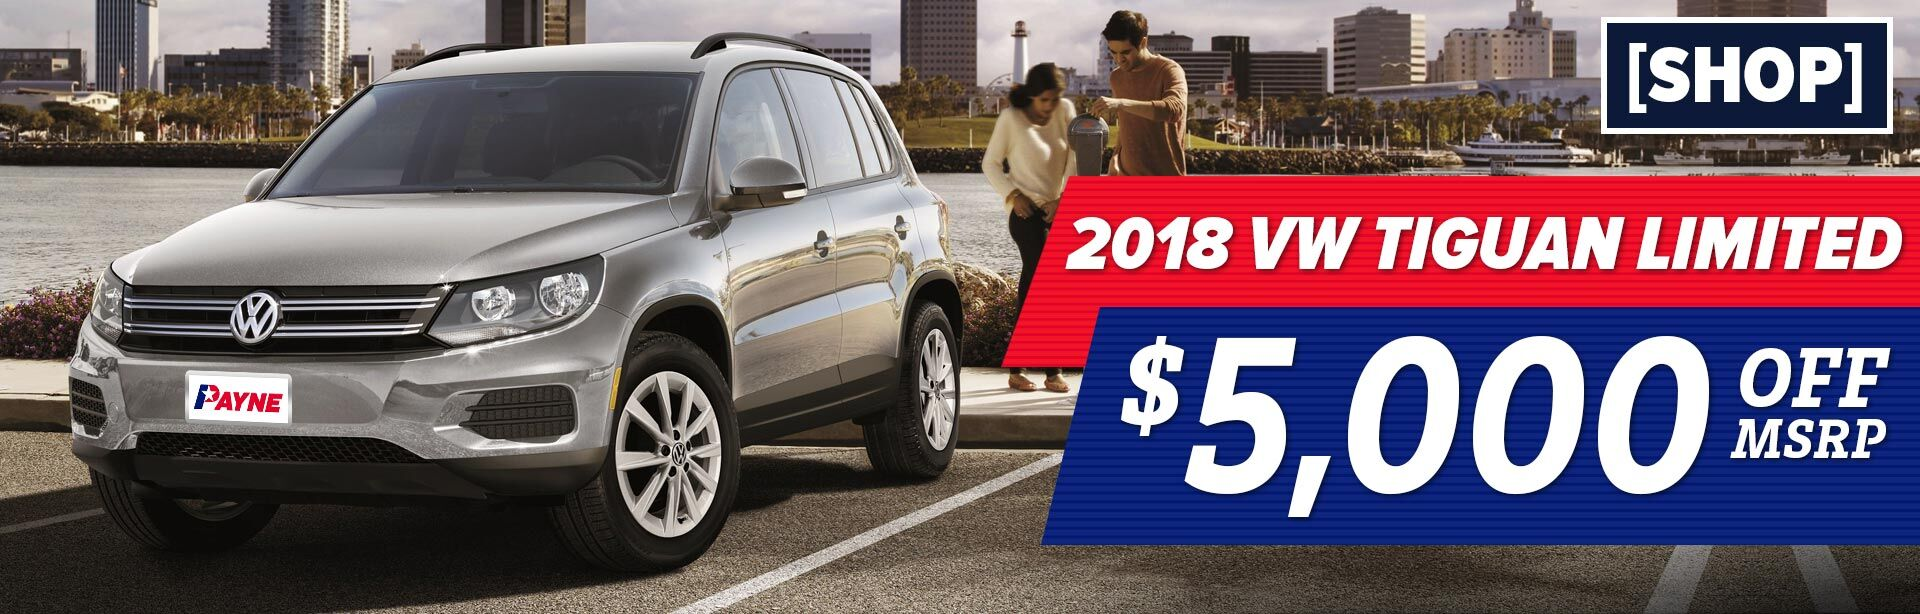 Volkswagen Mitsubishi Dealership Brownsville TX Used Cars Payne Brownsville